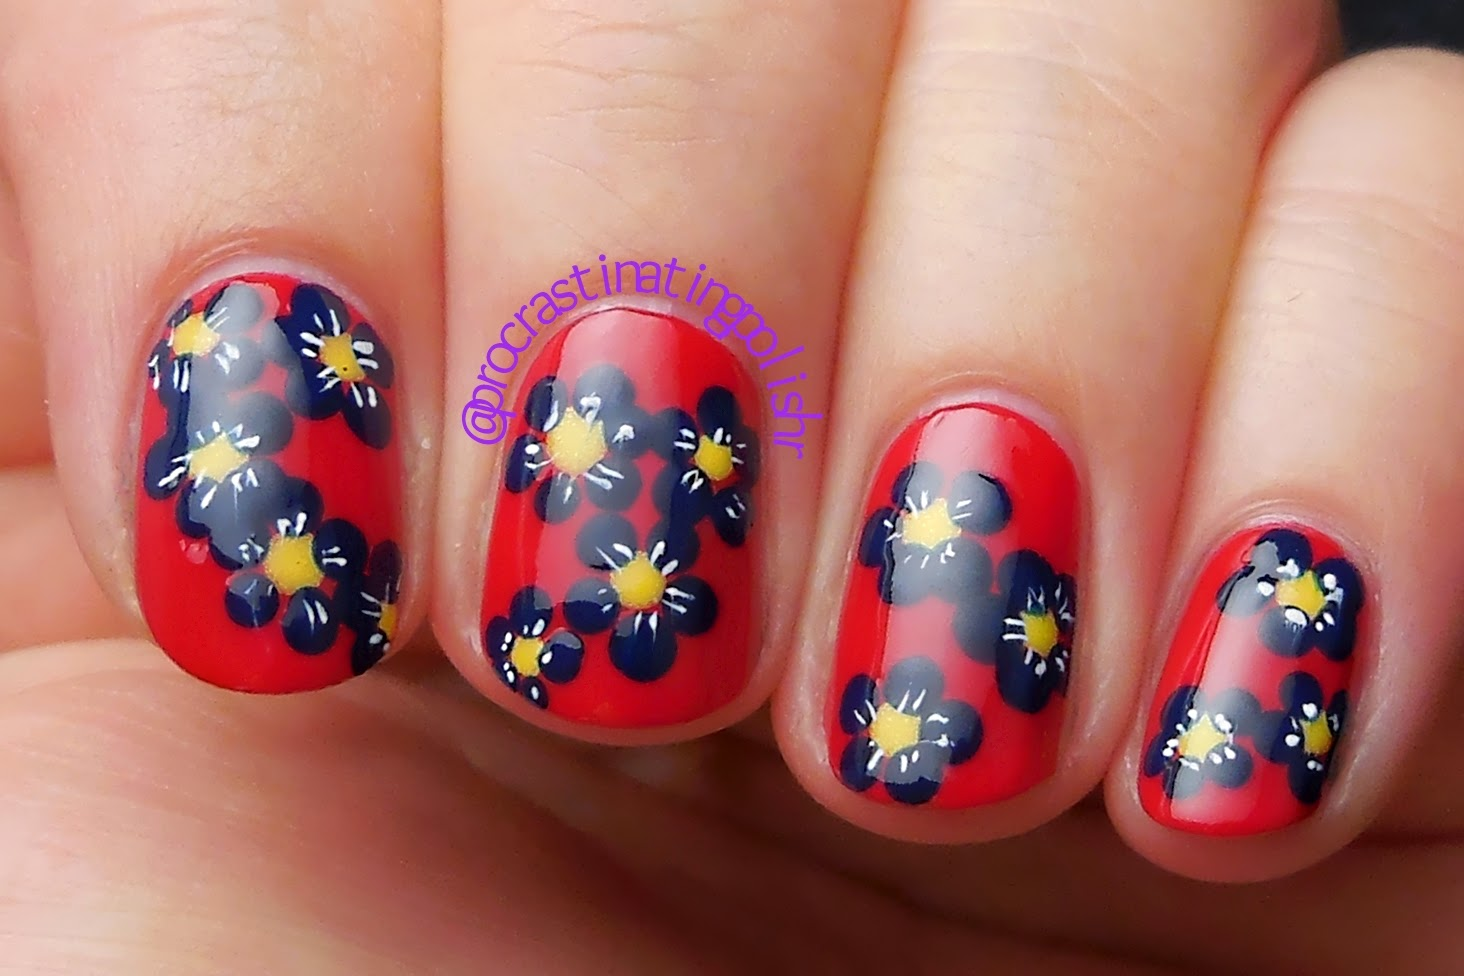 Blue daisy nail art